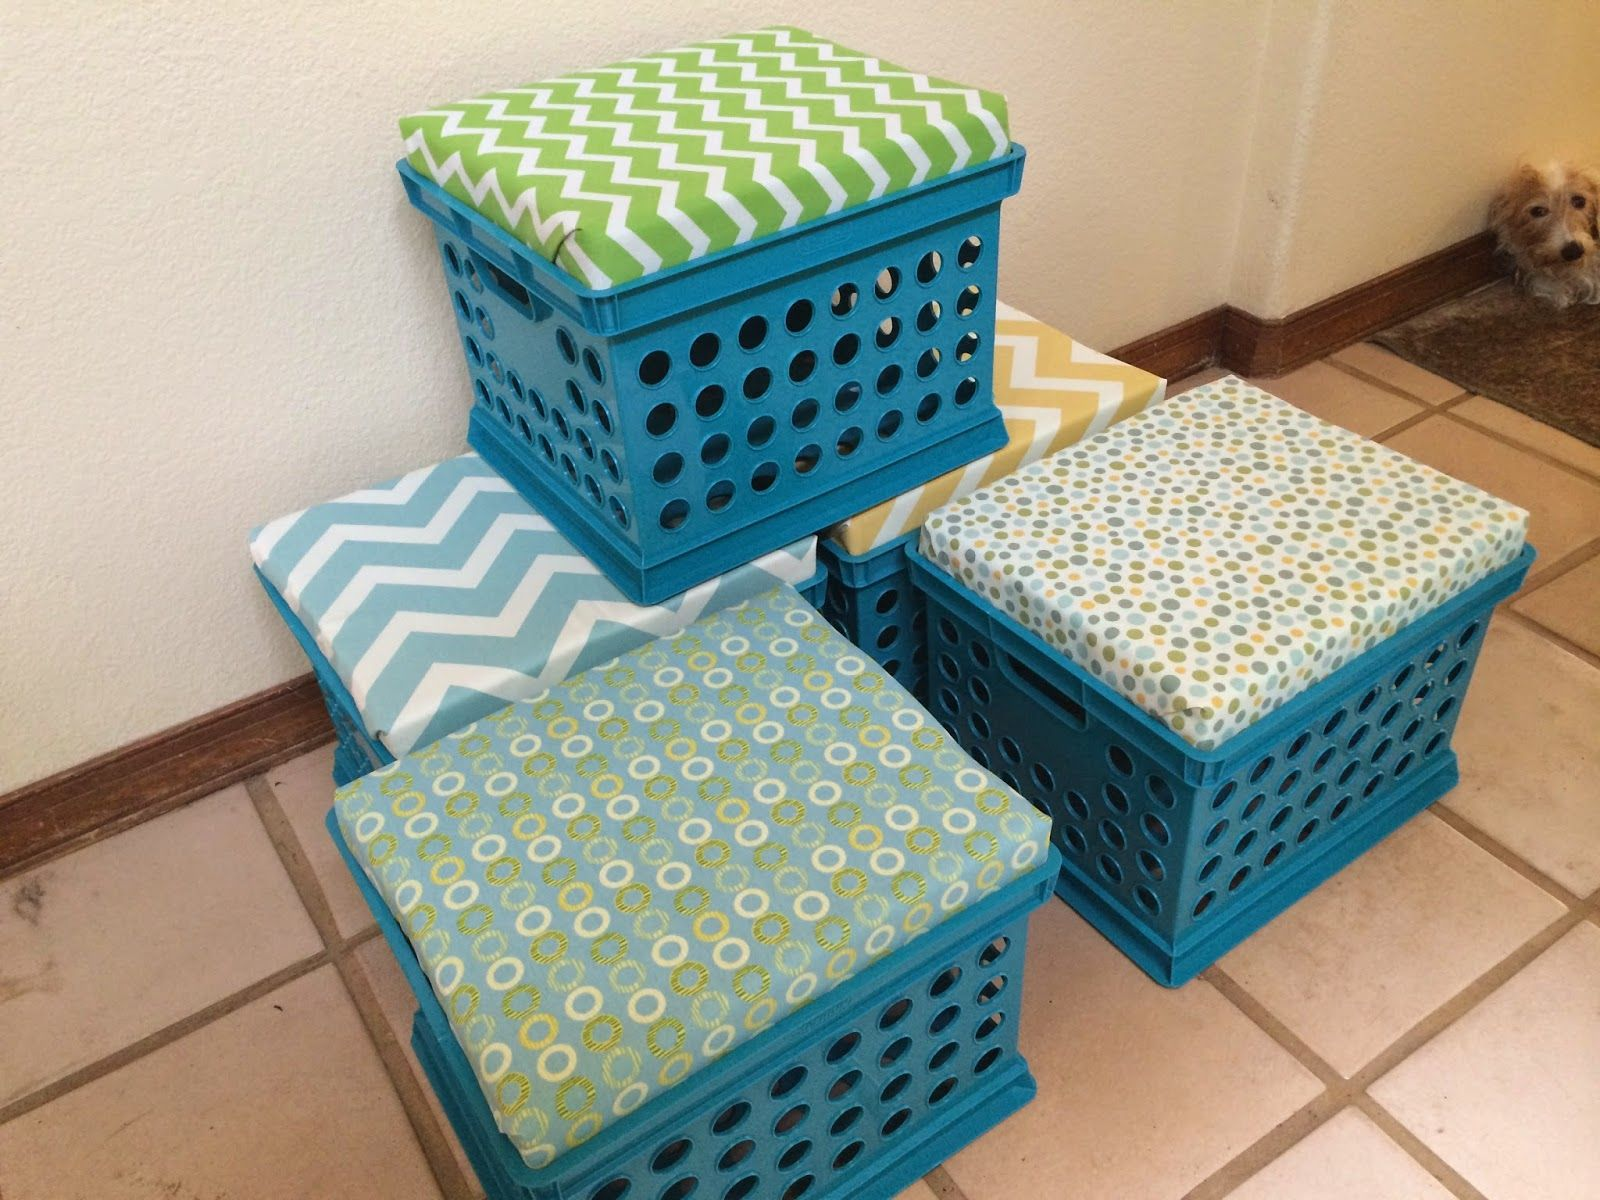 I Love My New Milk Crate Seats! They Were Super Easy To Make And Look